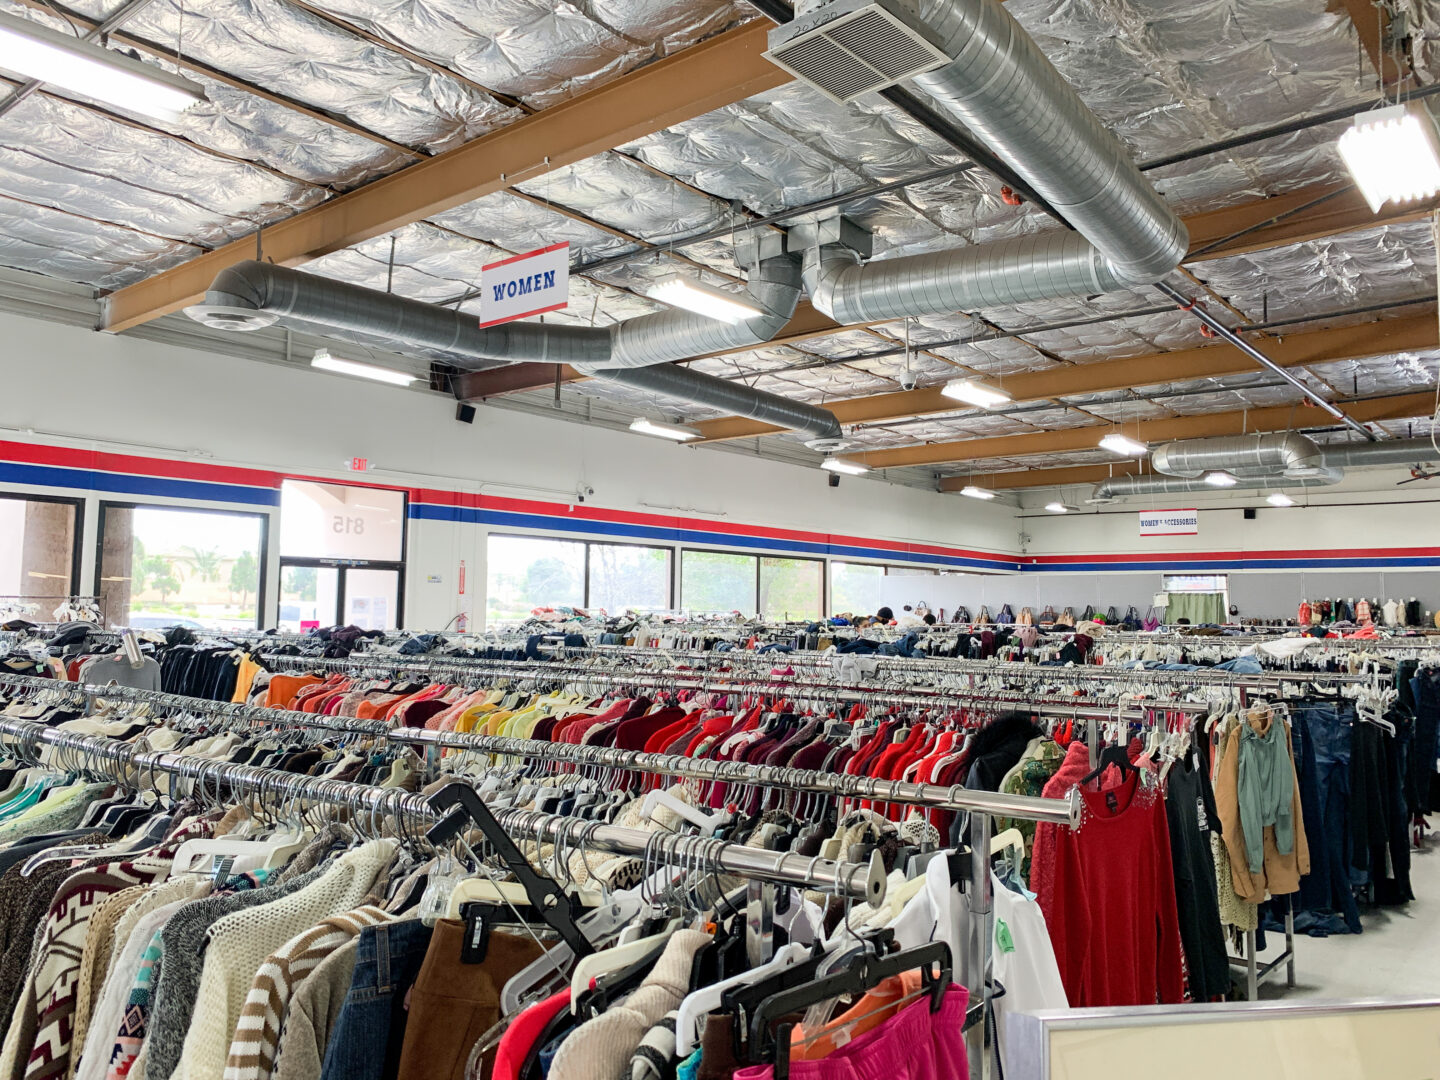 Thrifting Safely During Corona